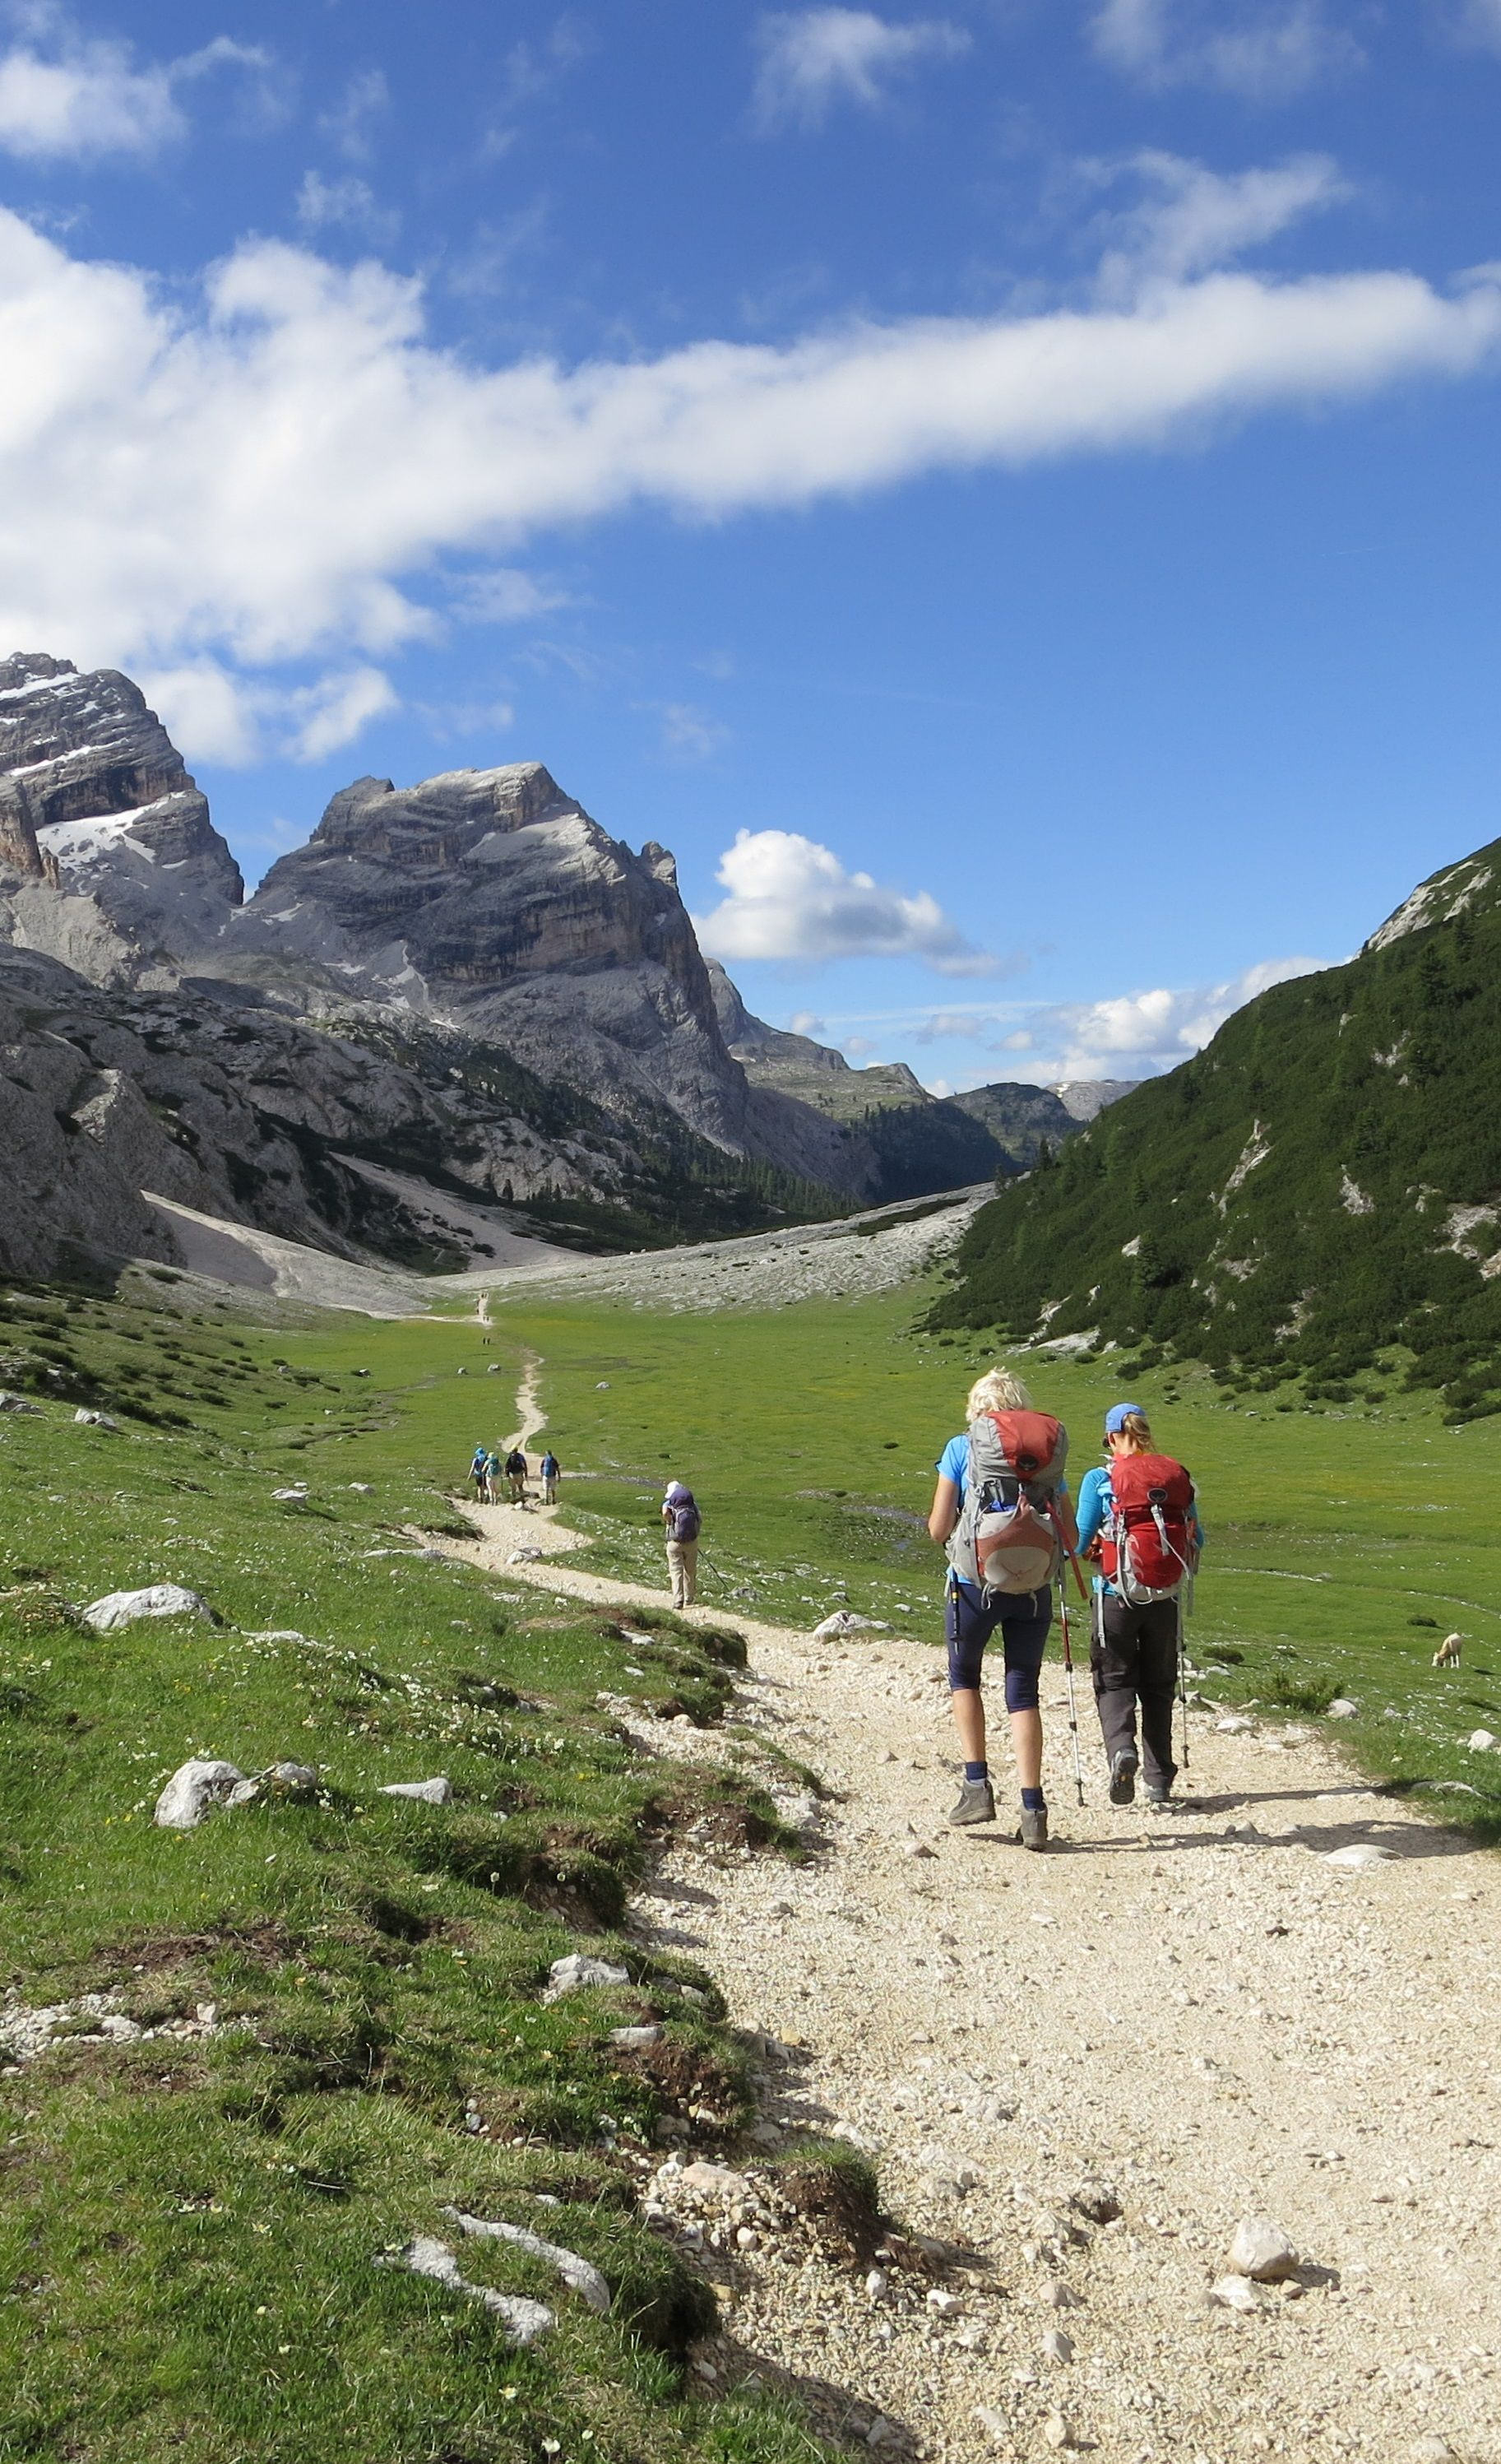 Beautiful Scenery On The Alta Via 1 Hut To Hut Hike In The